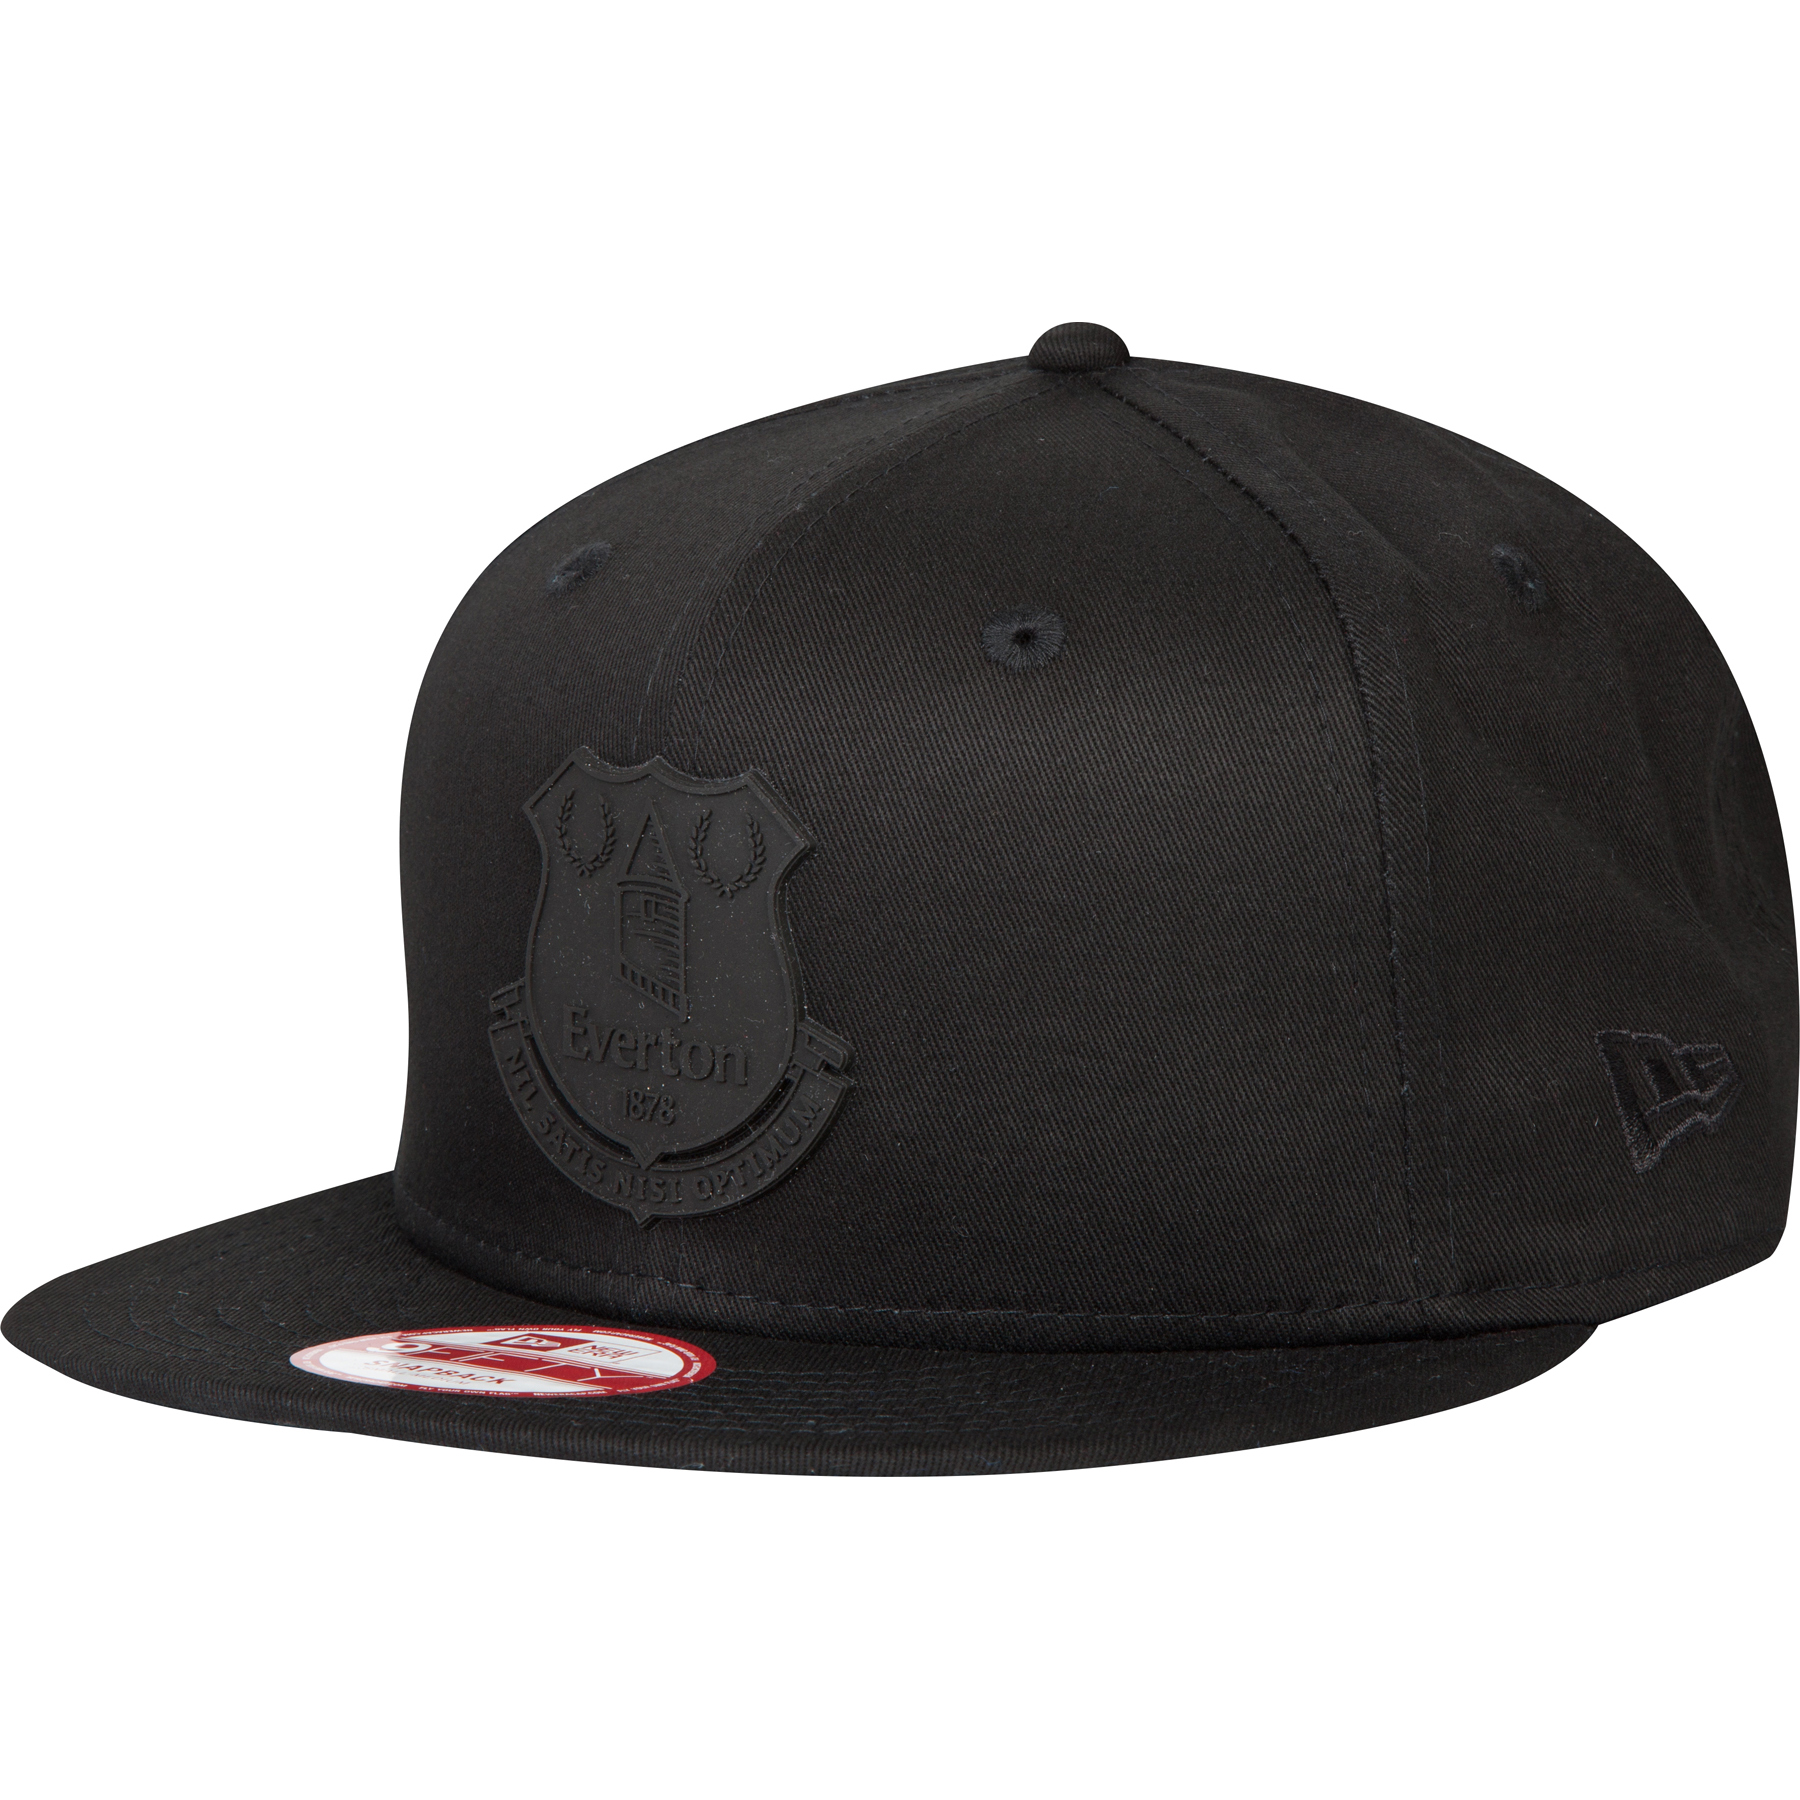 Everton New Era 9 Fifty Snapback Cap Cap - Black